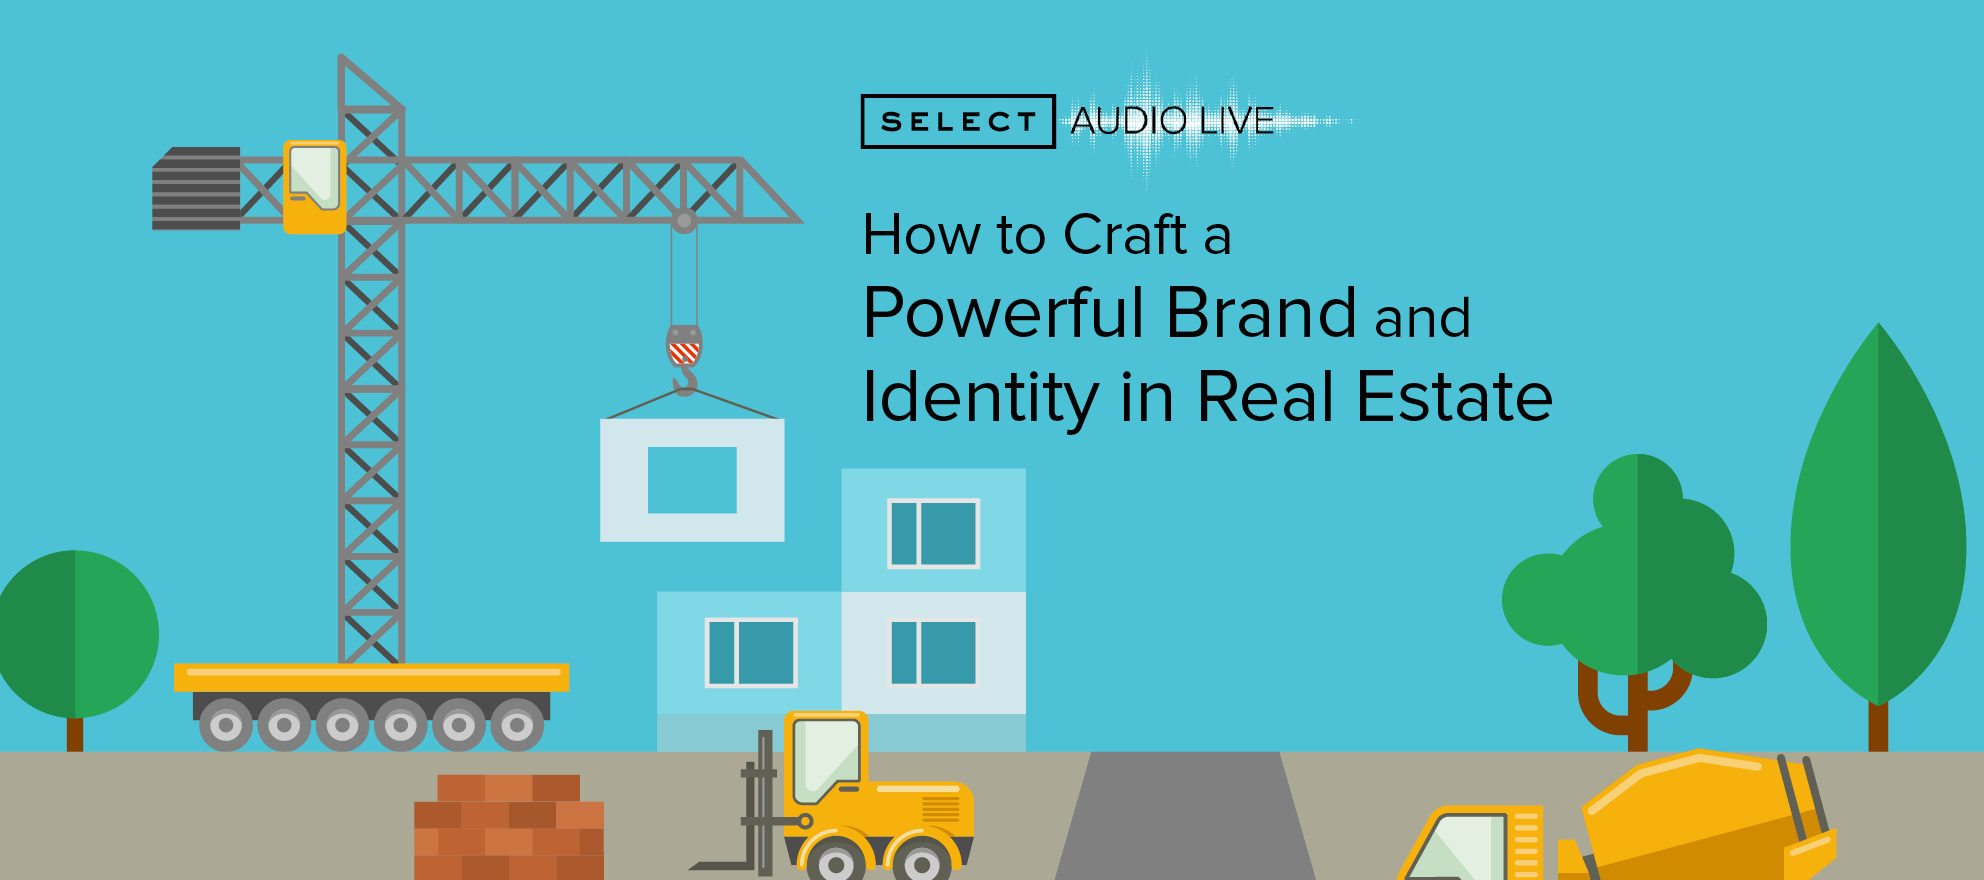 Learn the secrets of building a powerful real estate brand